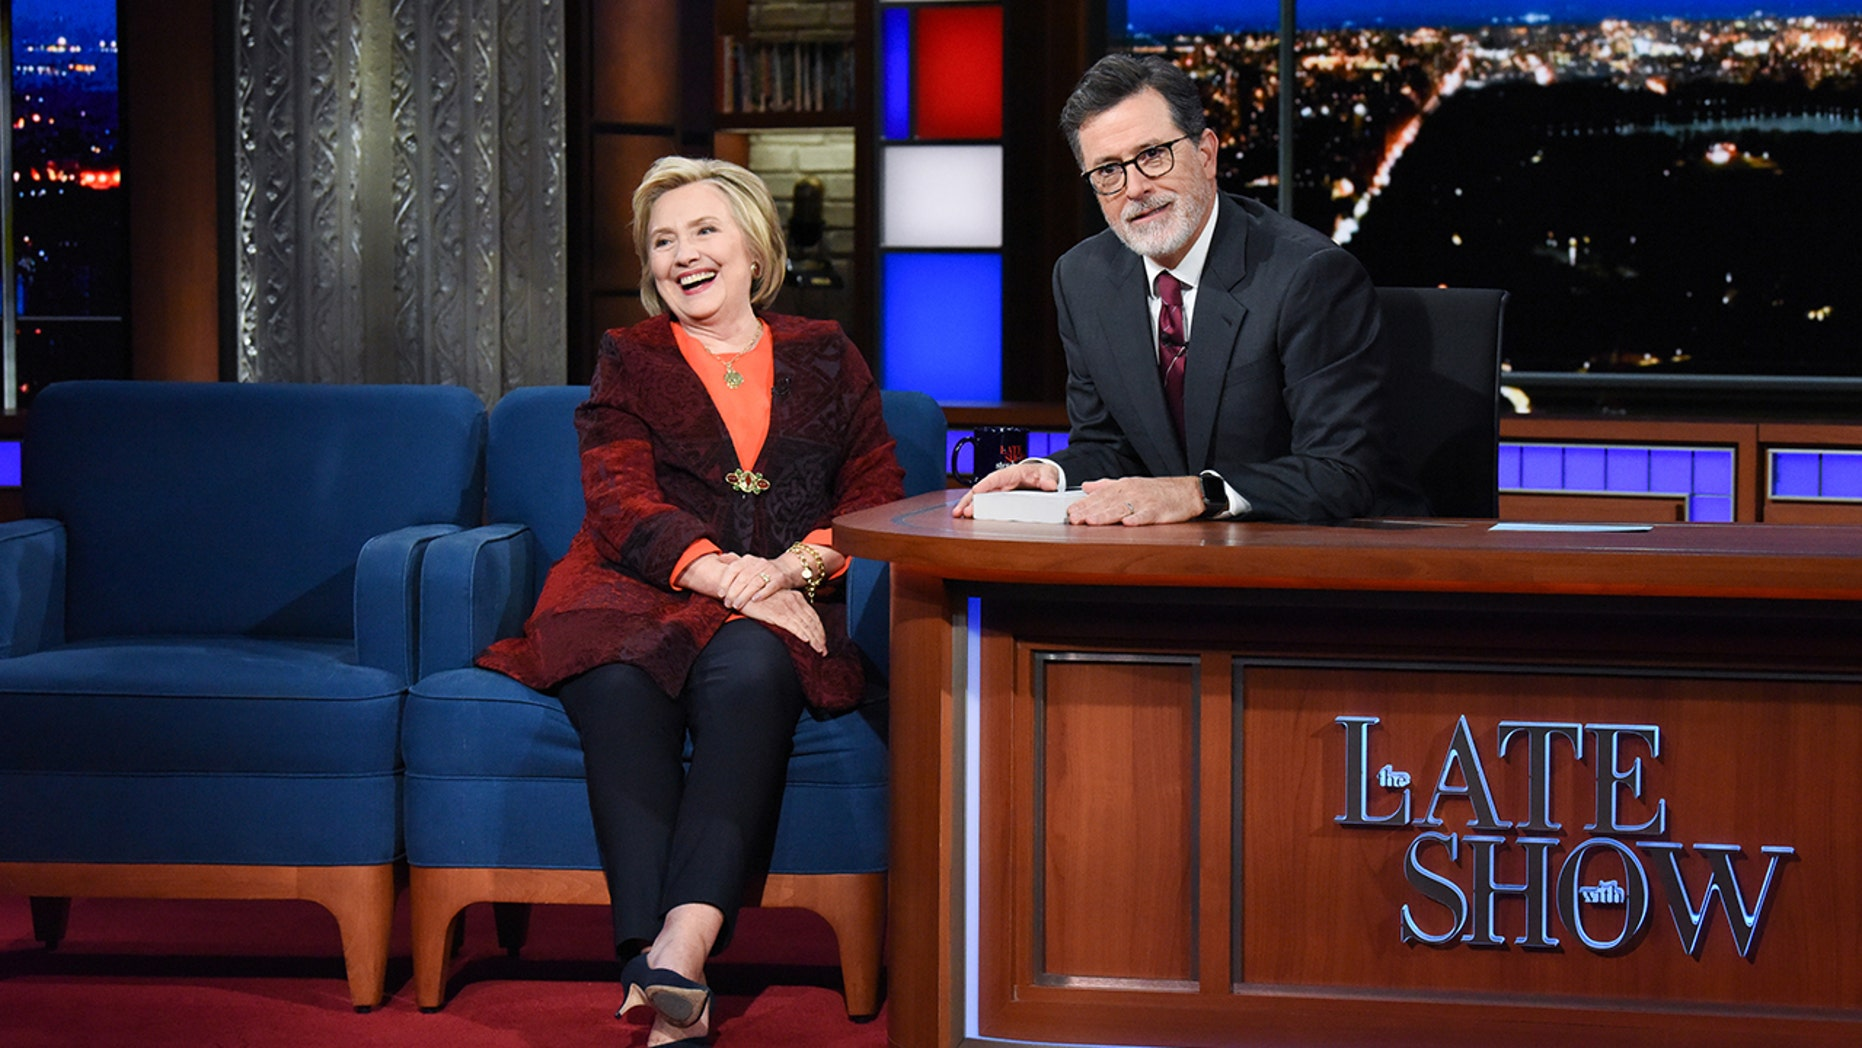 Hillary Clinton appeared on 'The Late Show with Stephen Colbert' to discuss the Brett Kavanaugh hearings.